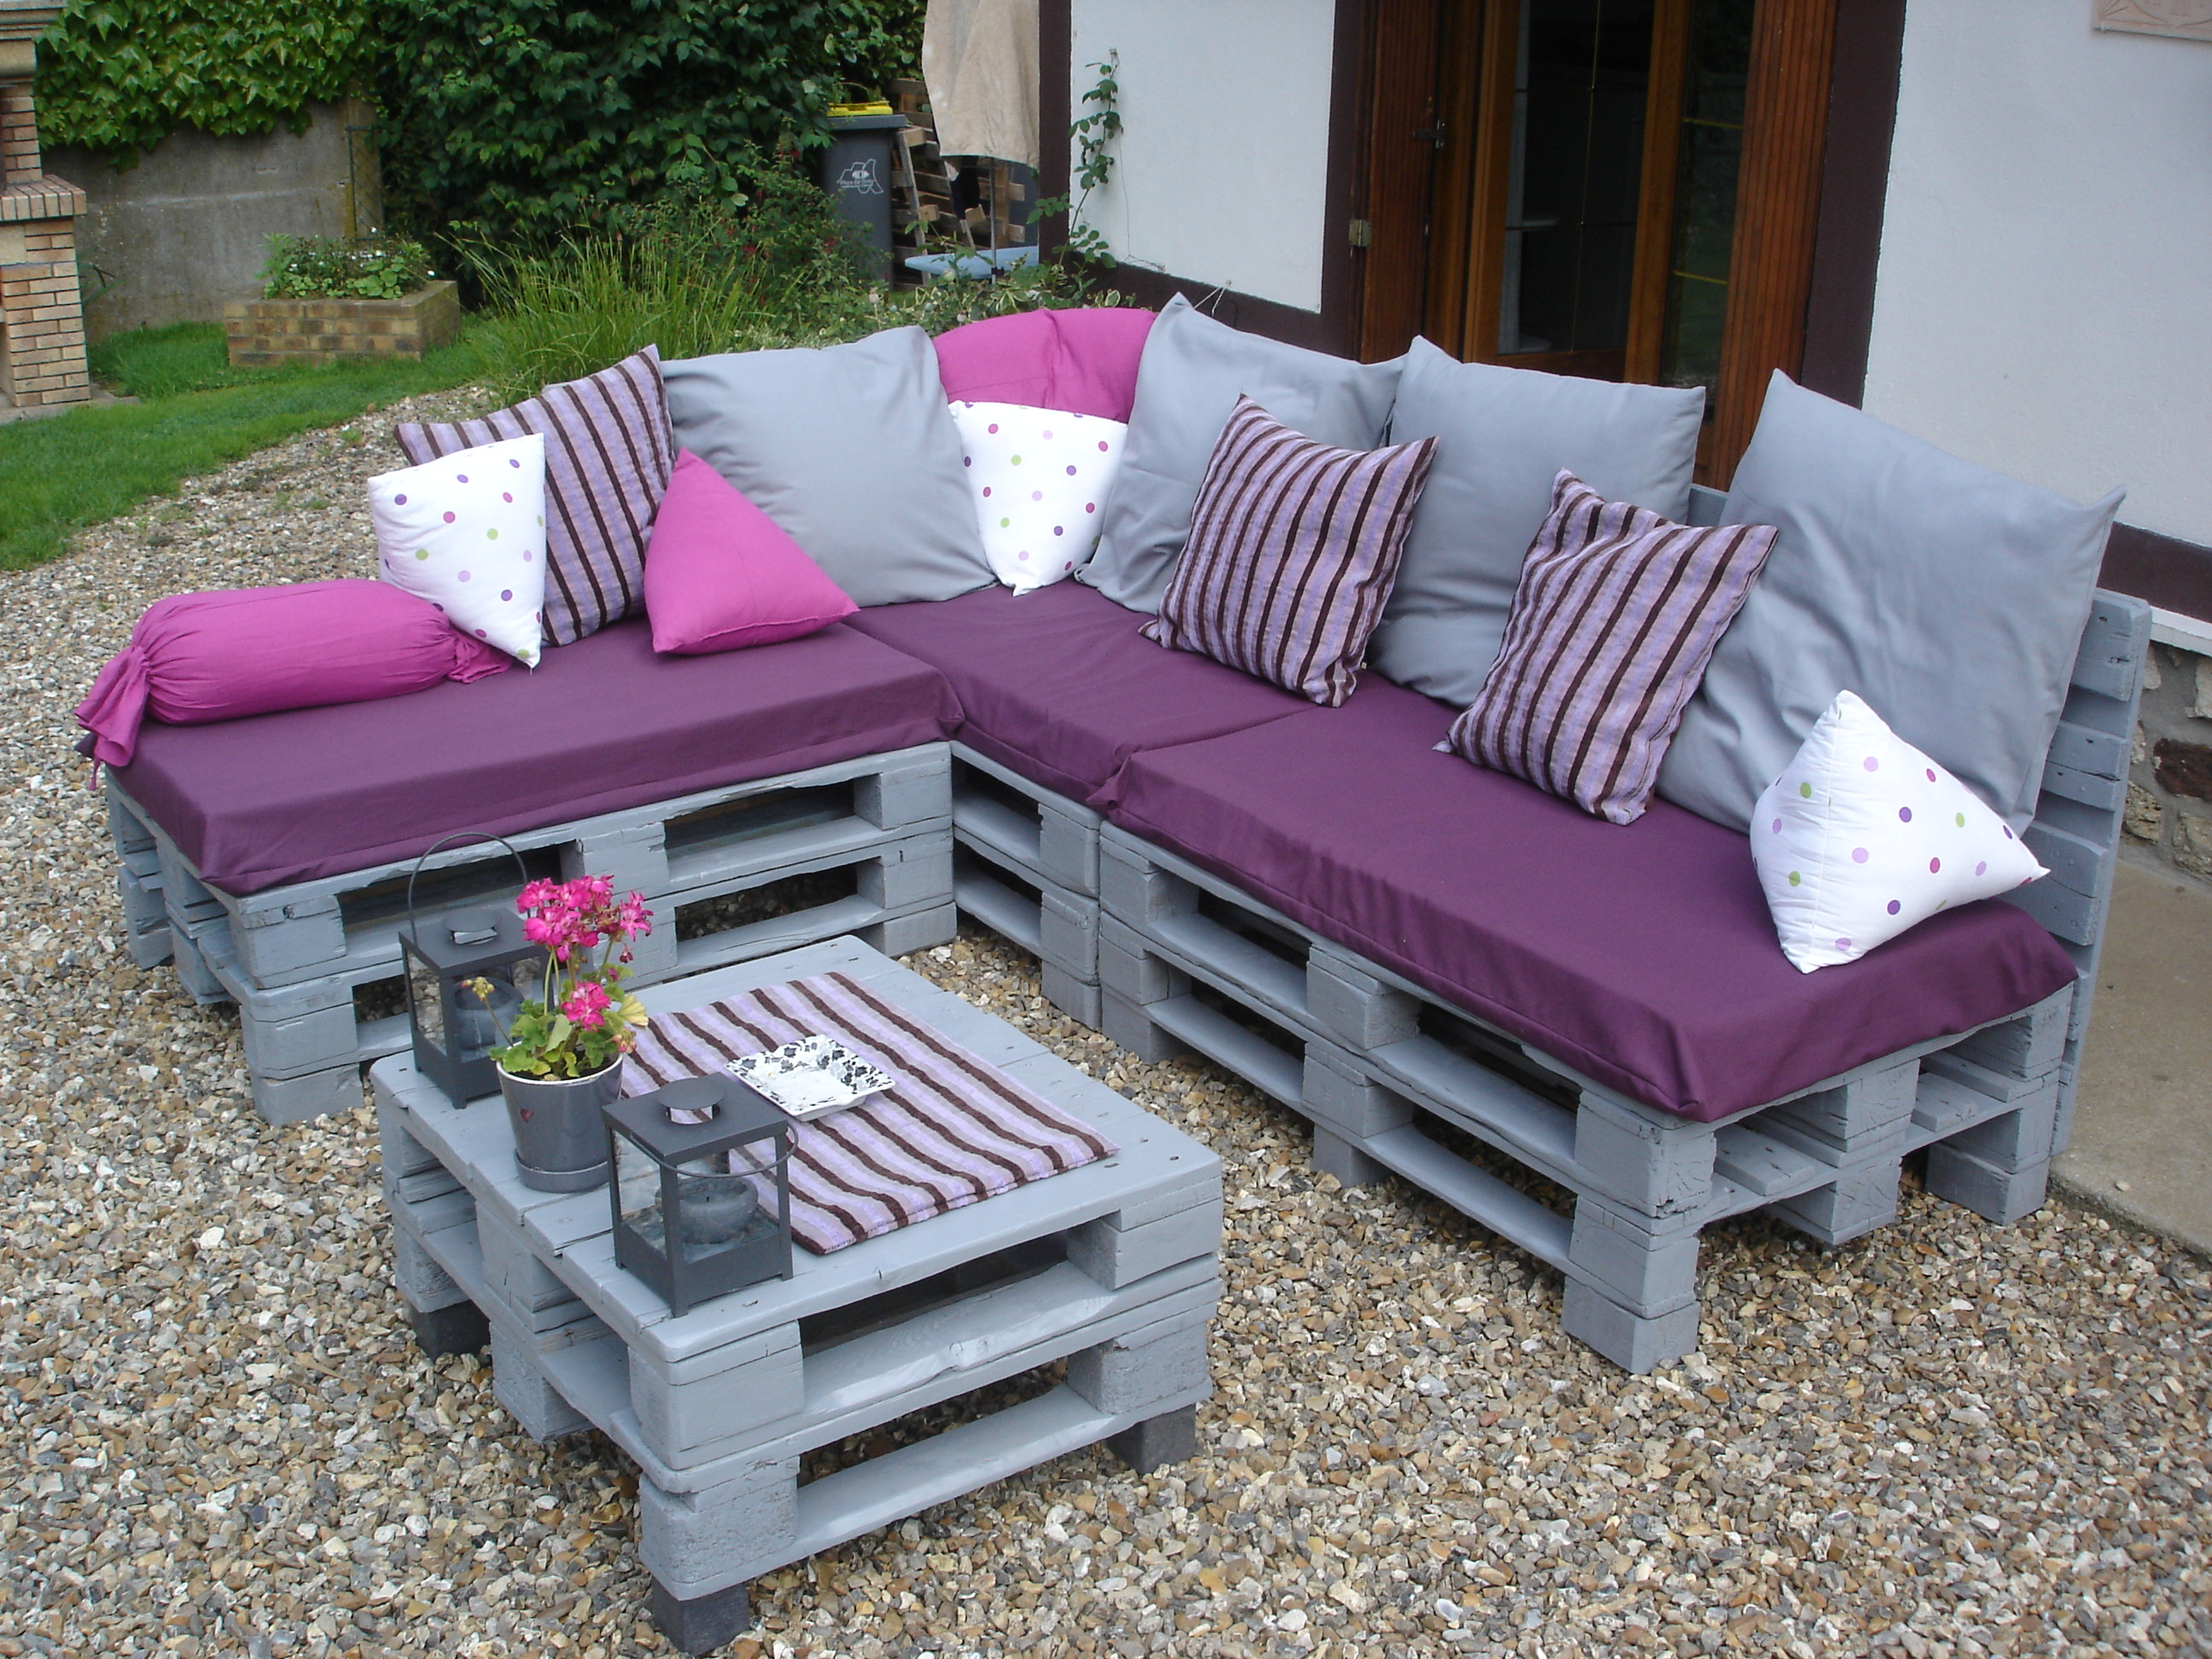 Comment Fabriquer Salon De Jardin En Palette - Fashion Designs